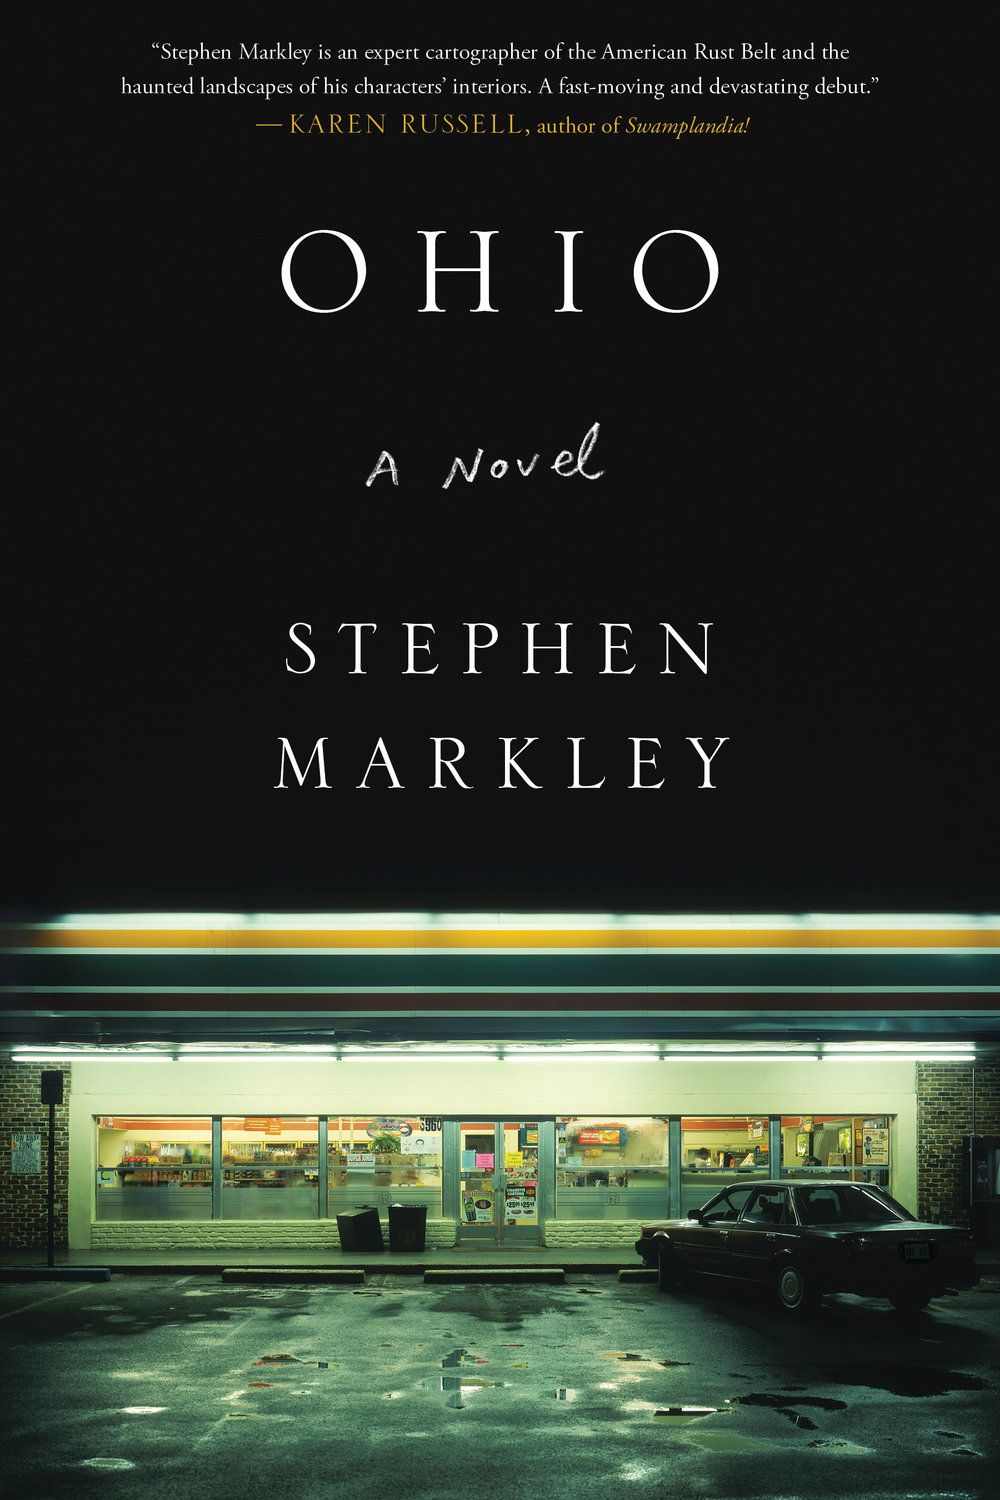 Ohio  by Stephen Markley, cover photograph by Harlan Erskine.